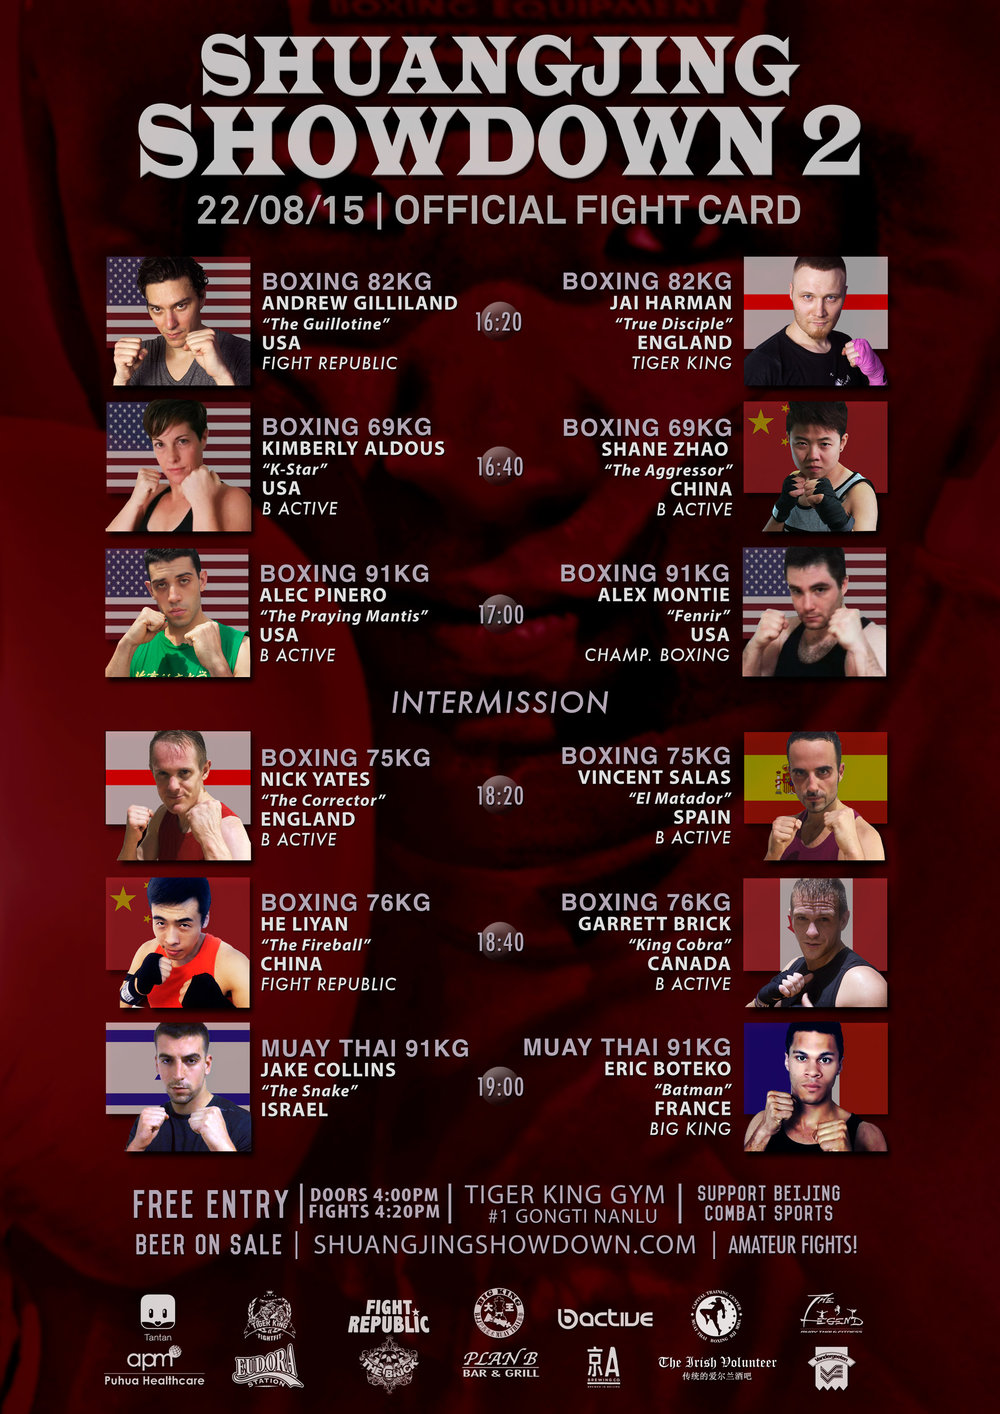 Shuangjing_Showdown_2_Fight_Card_Times_02_WEB.jpg